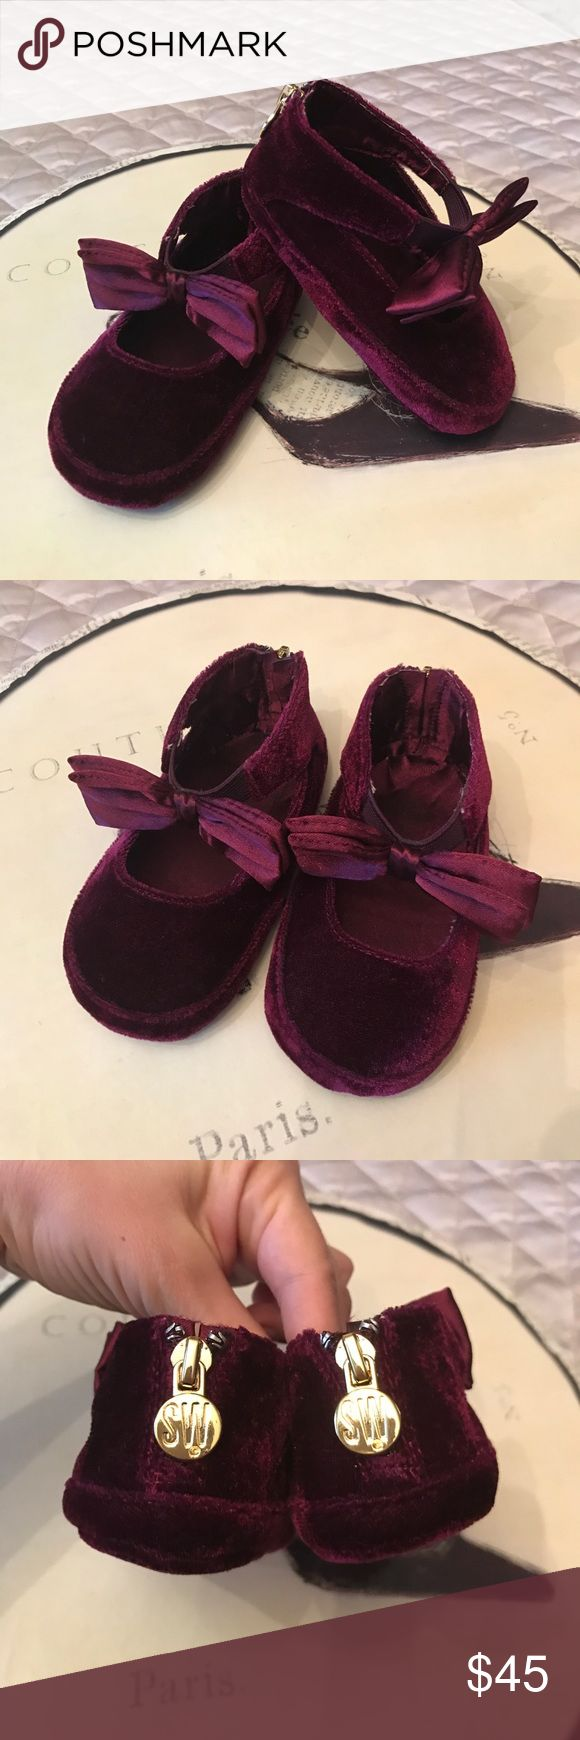 SW baby crib shoes One time worn for an hour. Never touched the ground No sign of wear Stuart Weitzman Shoes Baby & Walker